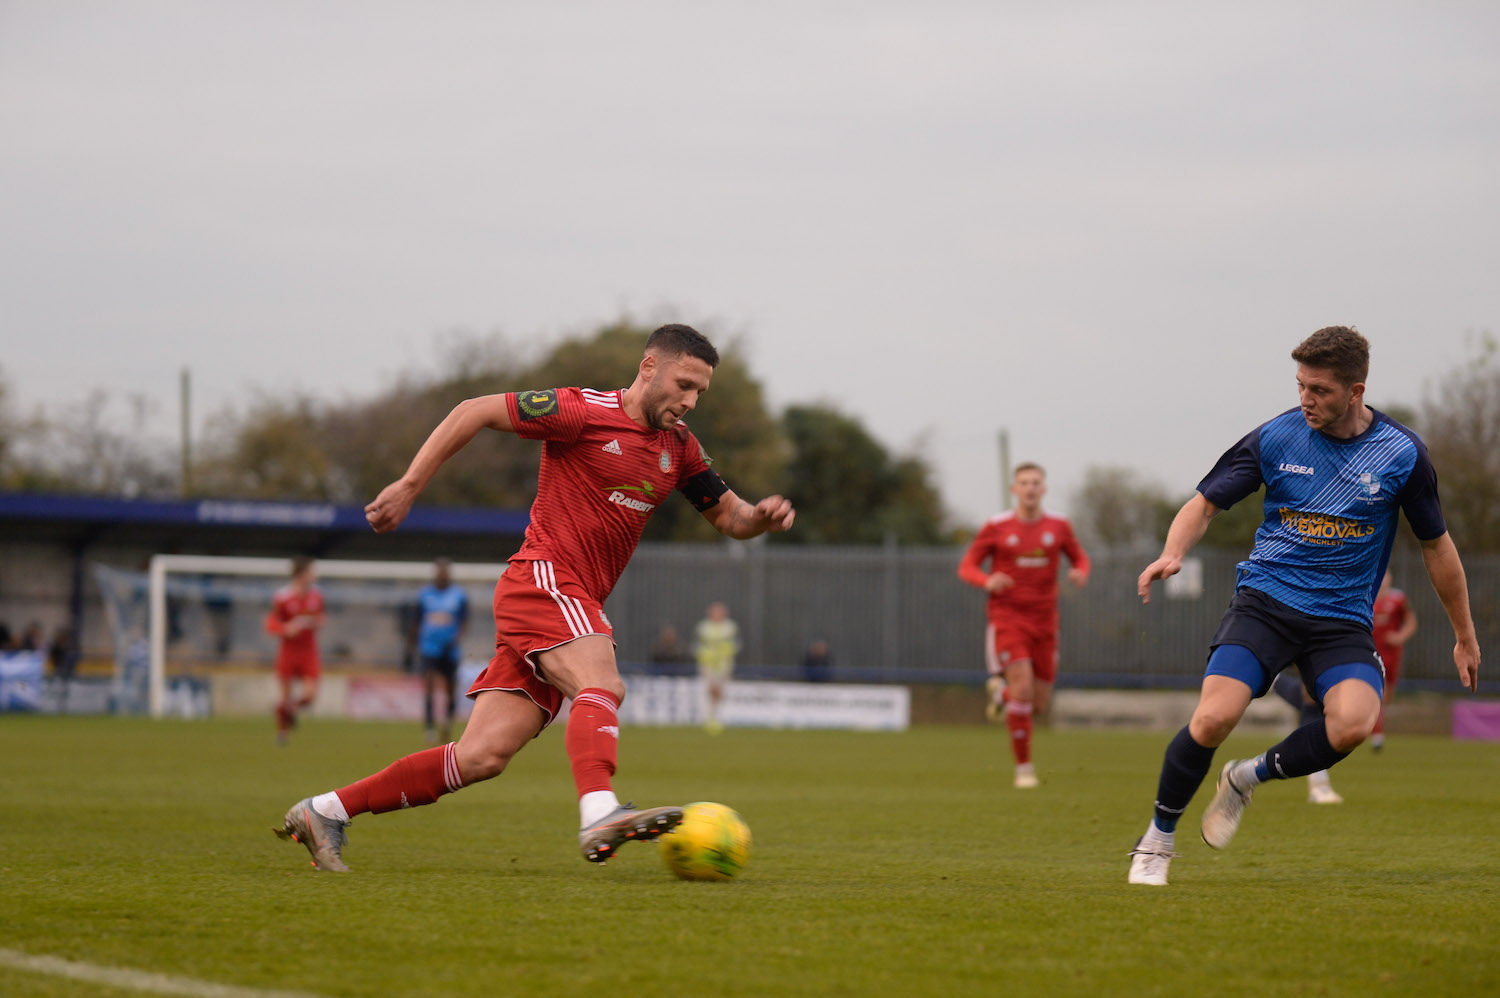 Read the full article - GALLERY | 19/20: Wingate & Finchley [A] – League